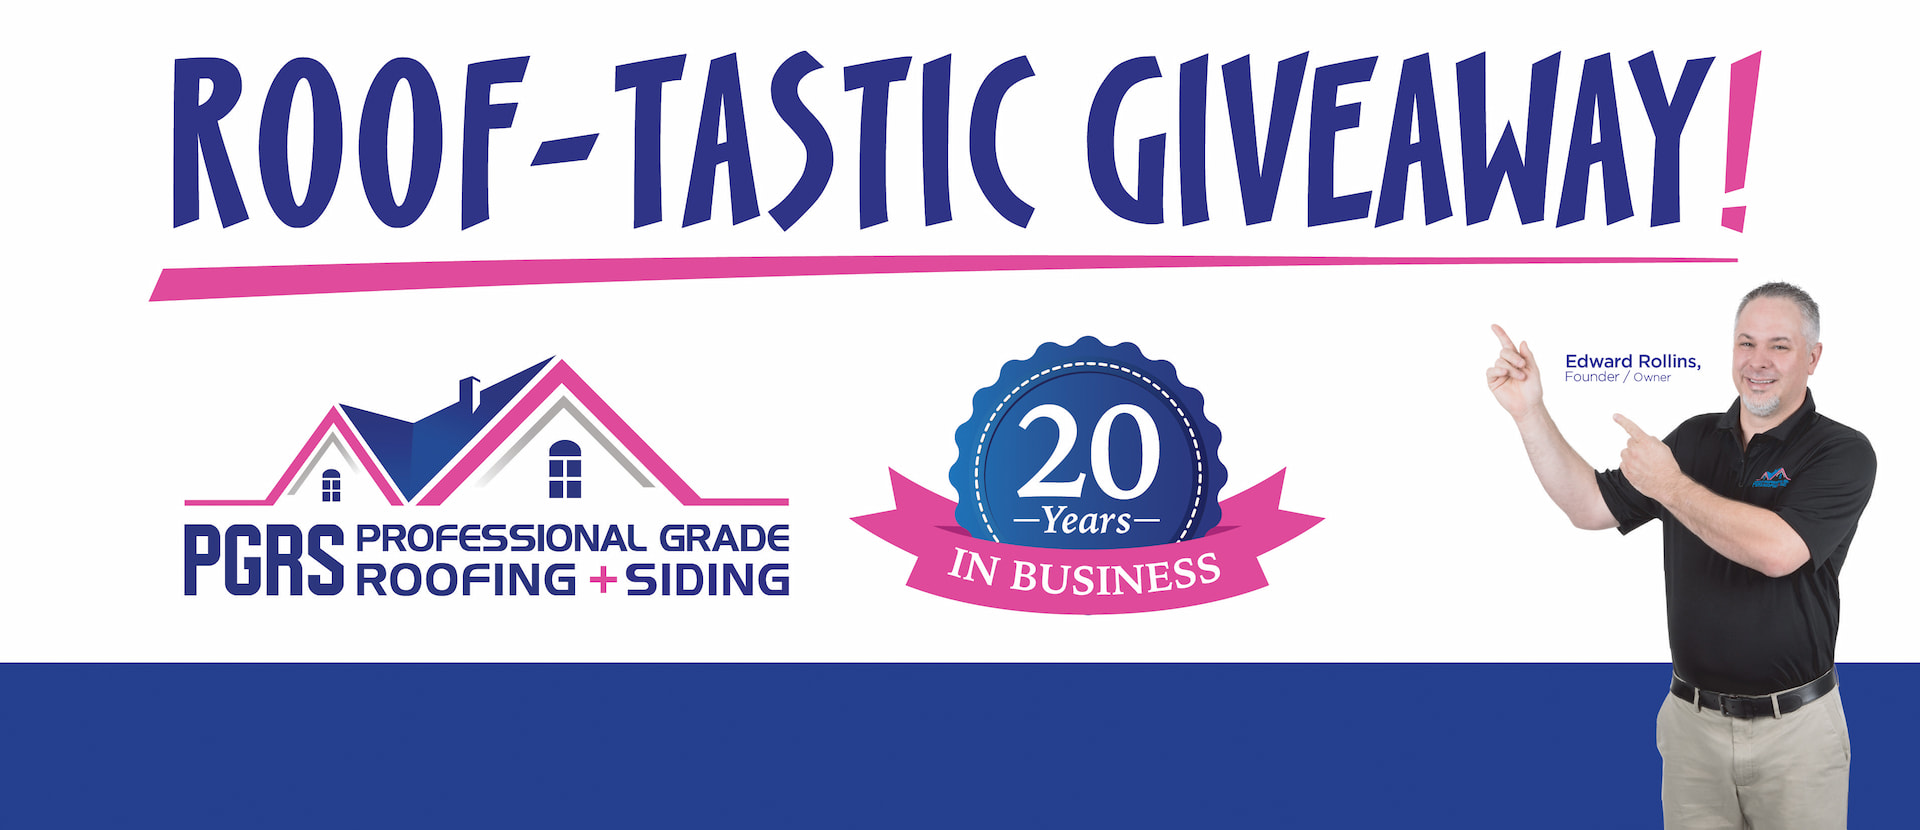 Rooftastic Giveaway Banner